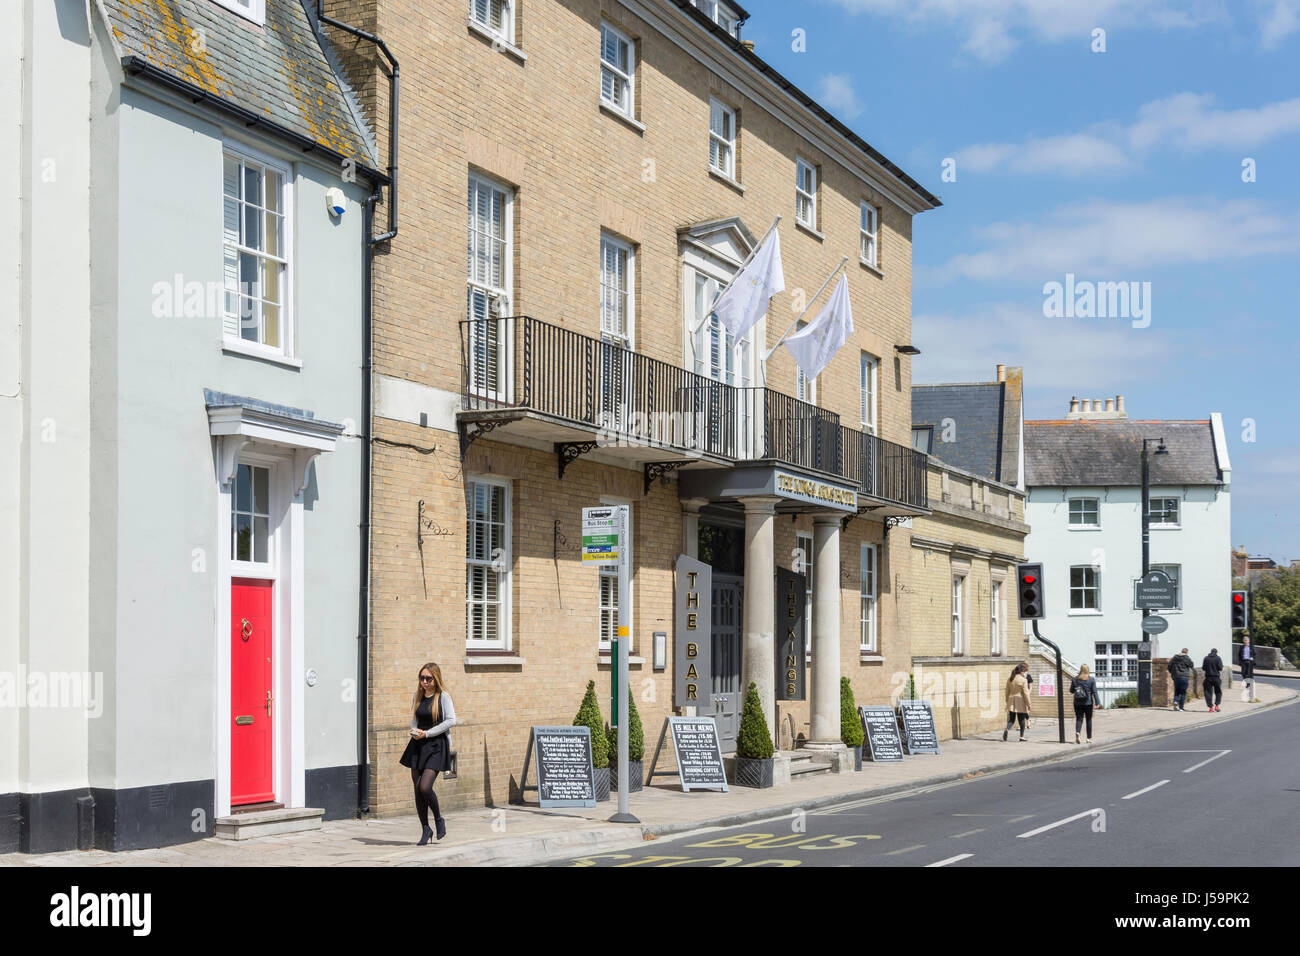 The Kings Arms Hotel, Castle Street, Christchurch, Dorset, England, United Kingdom - Stock Image